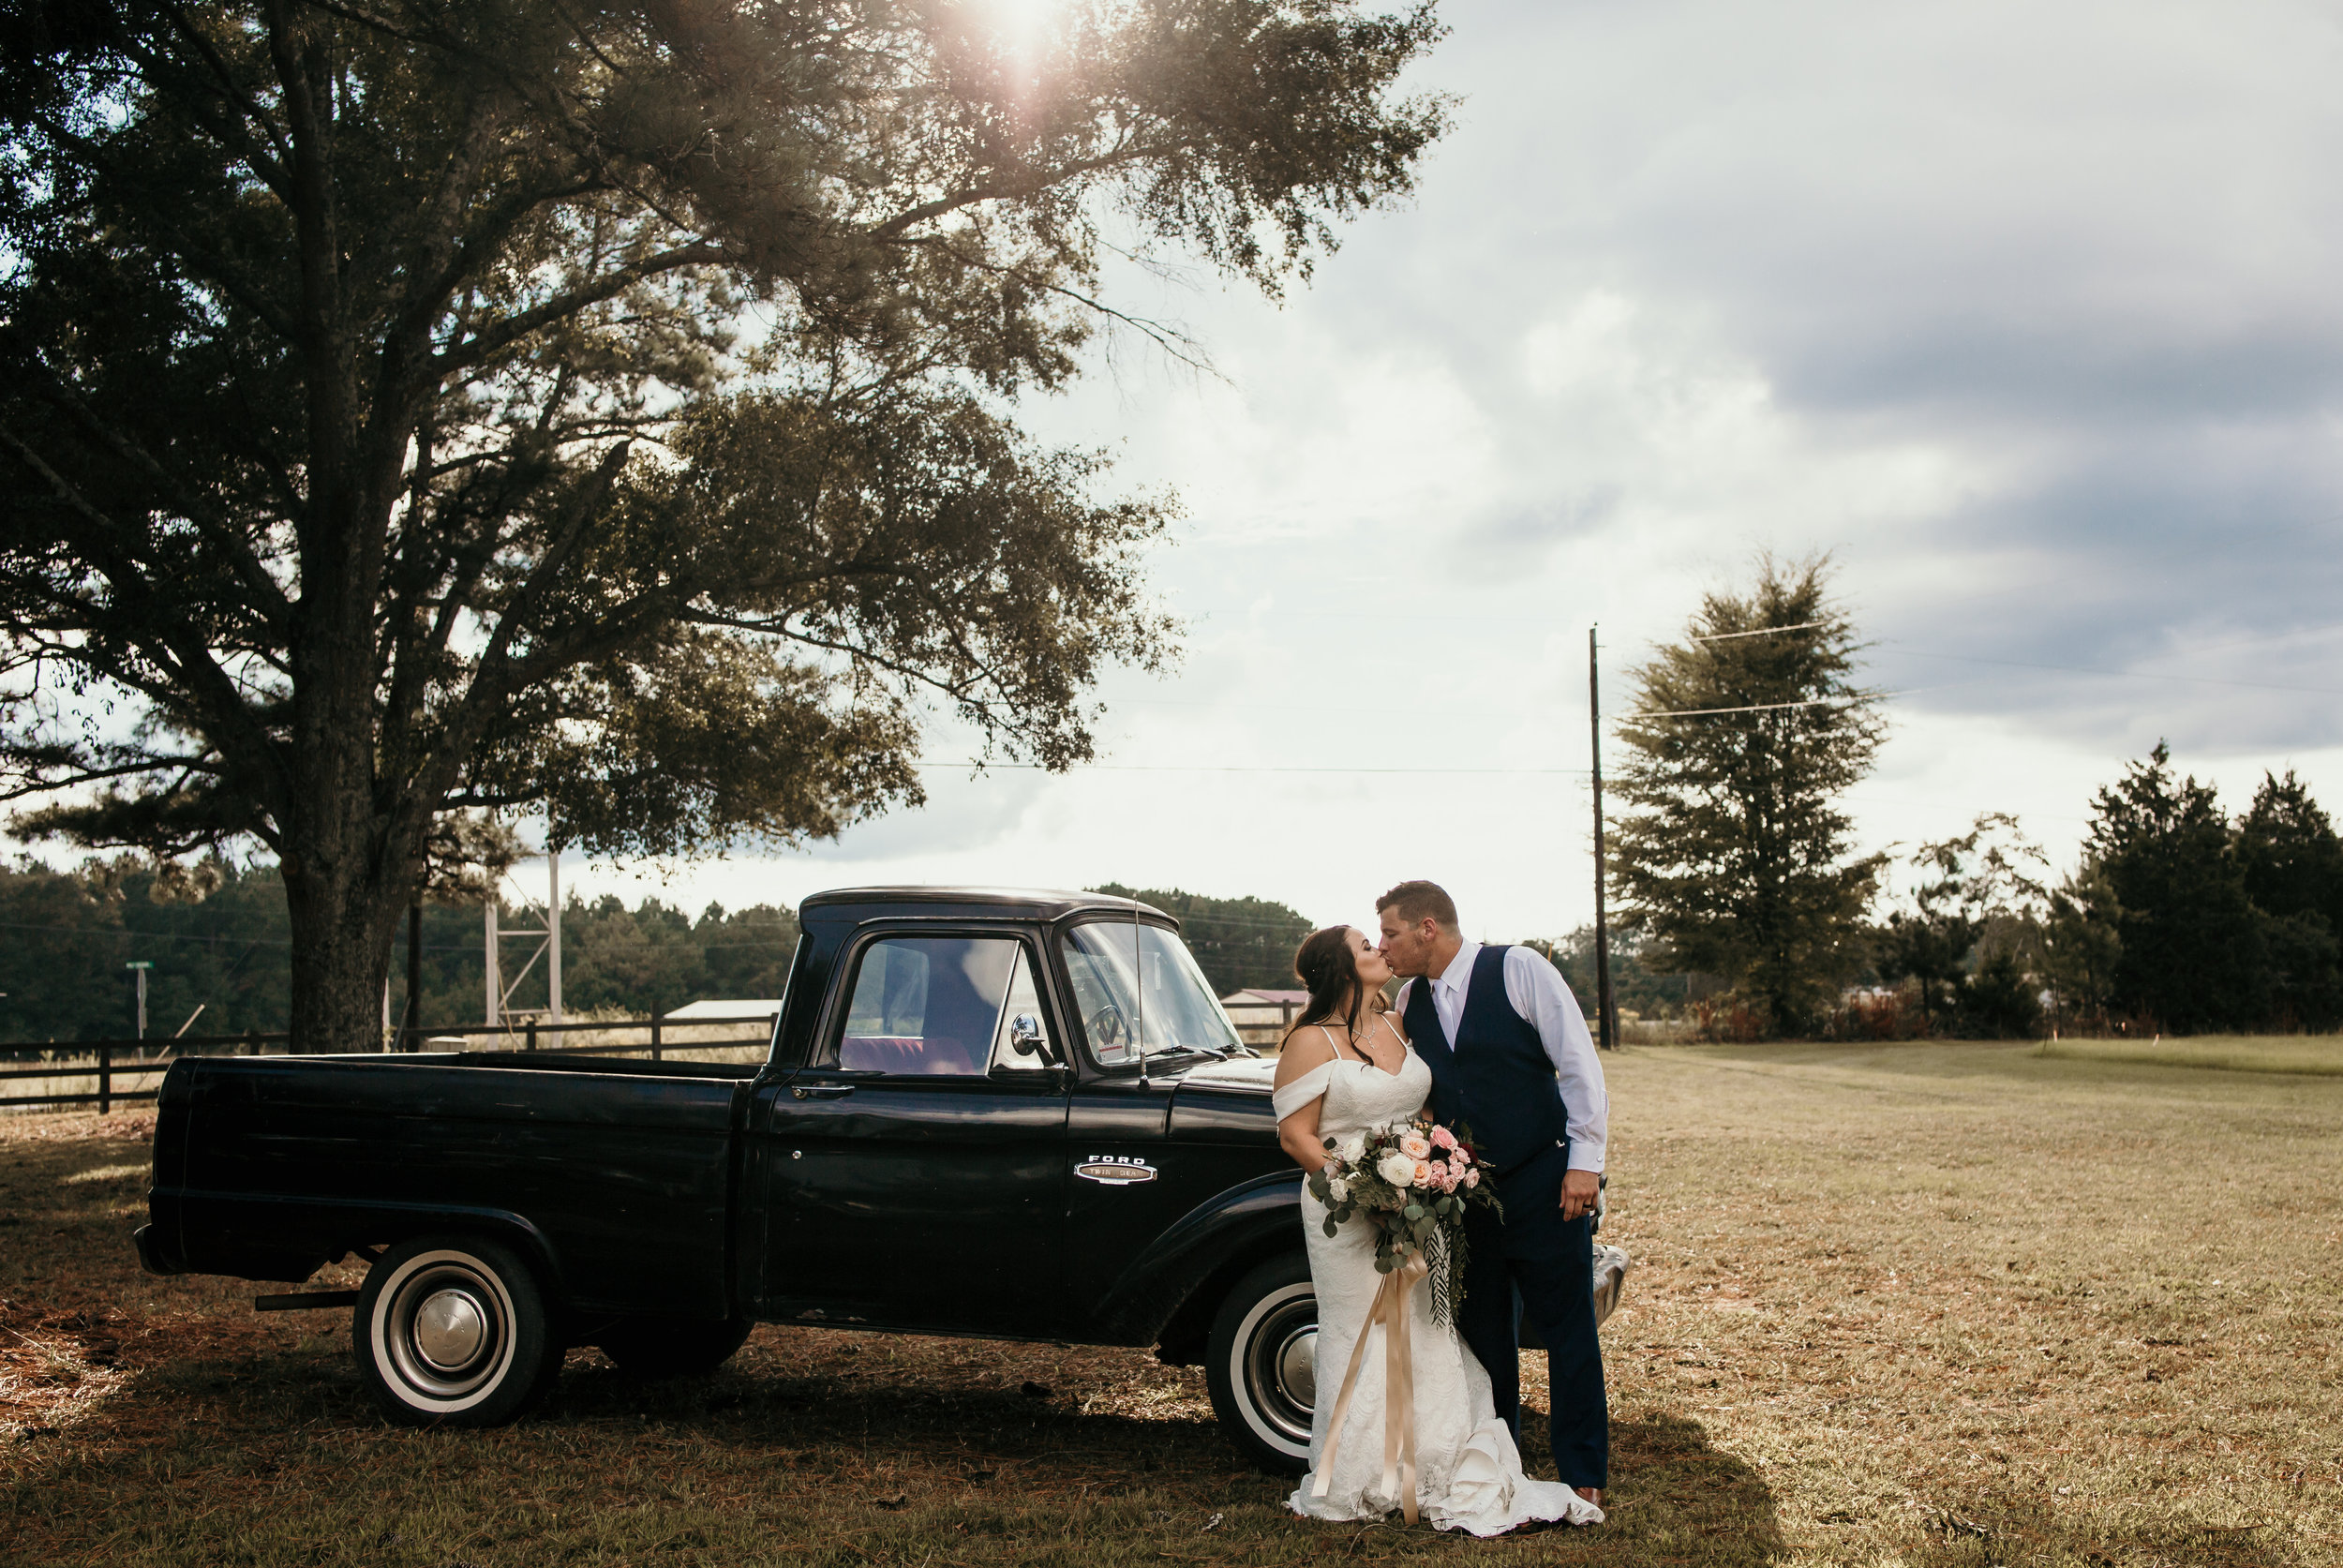 A Sunday September wedding! pc: Molly Rice Photography